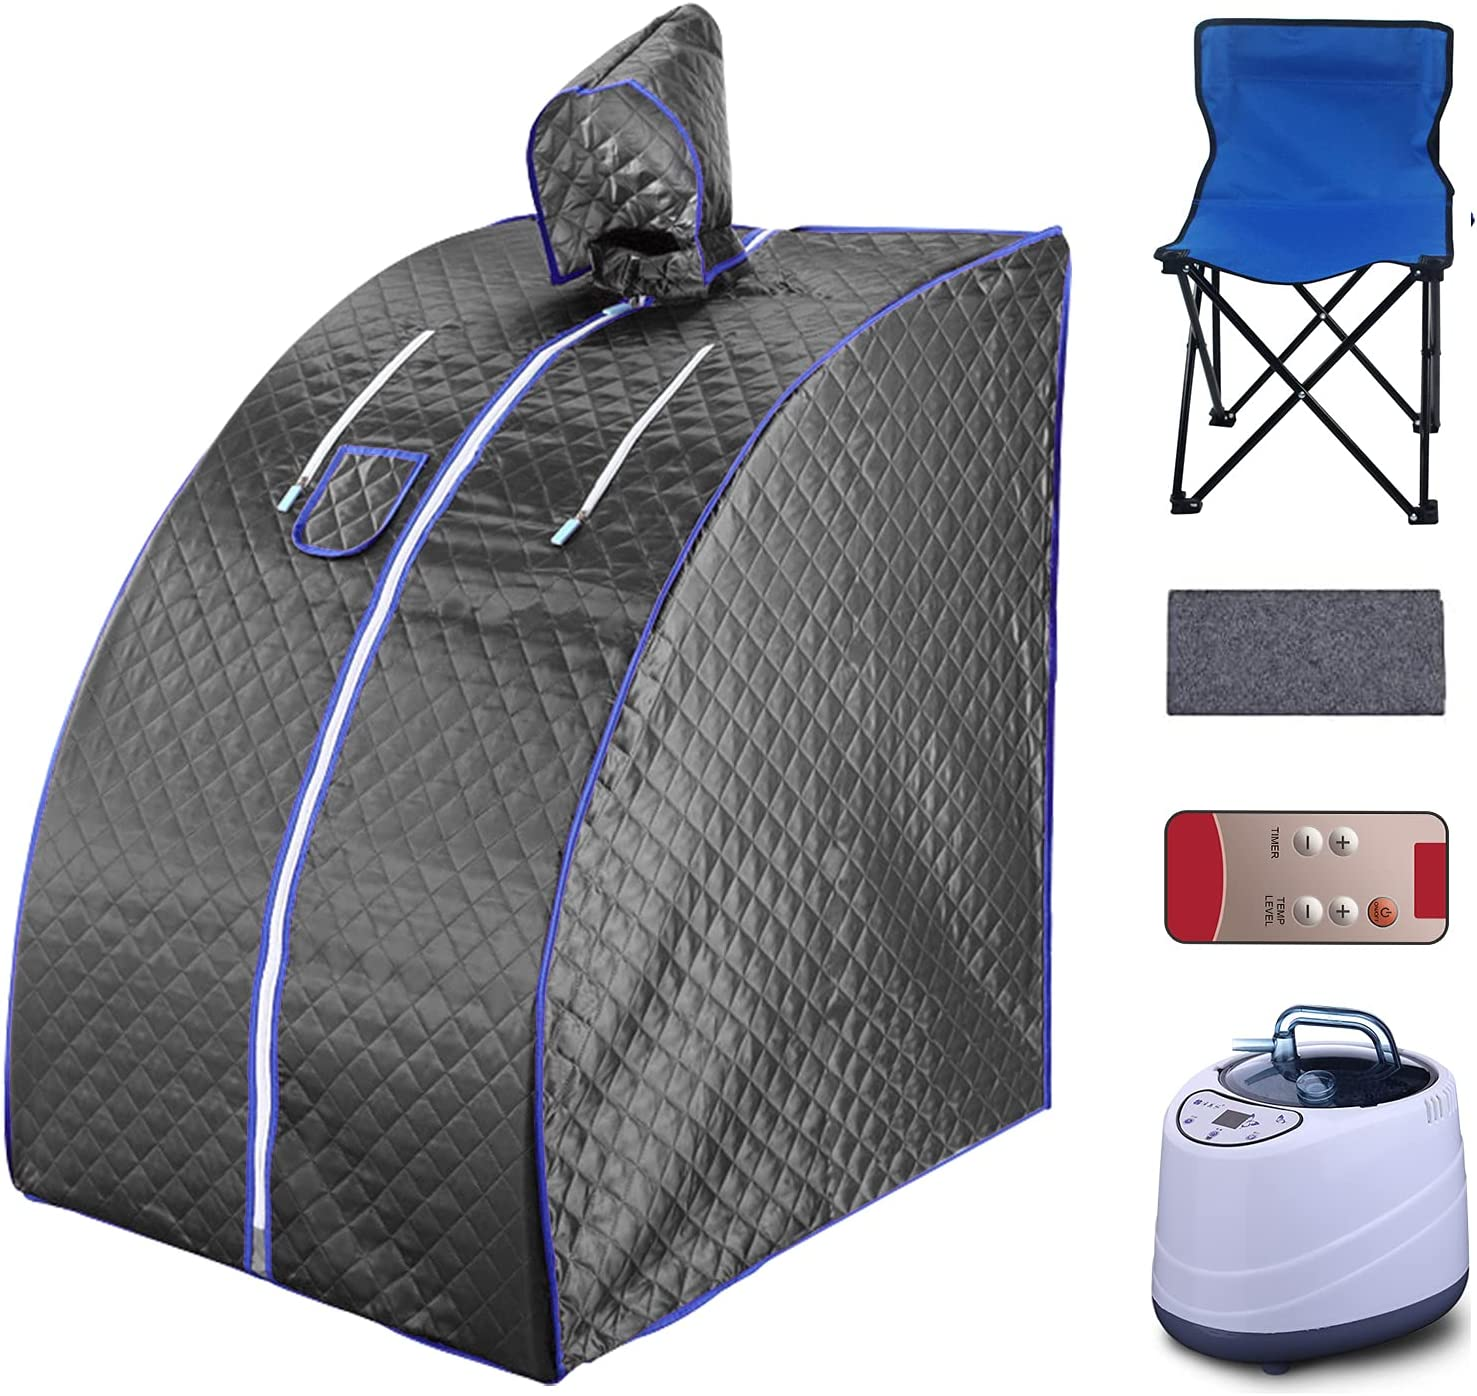 Oeyal Portable Steam Sauna Spa for Japan's largest assortment Mesa Mall Personal Relaxation 2L